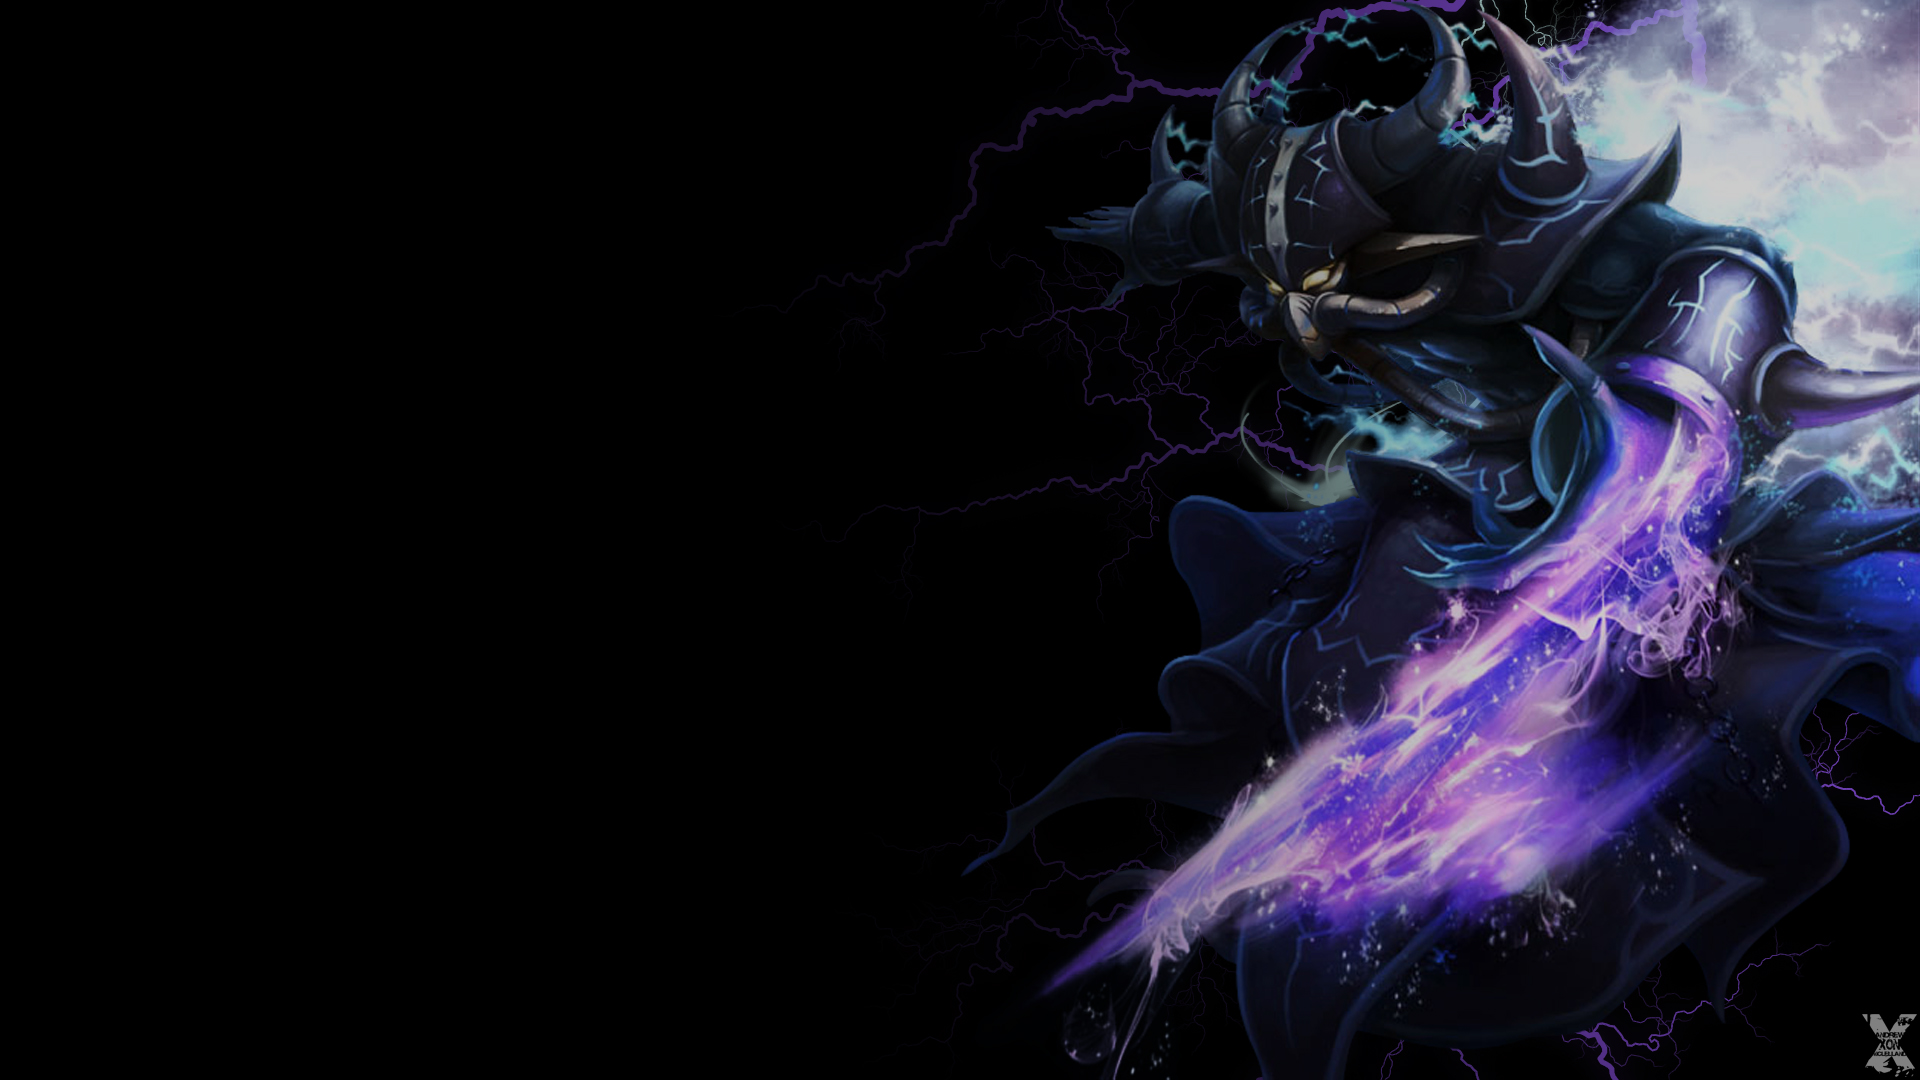 Kassadin wallpaper by Andrew Xon McLelland